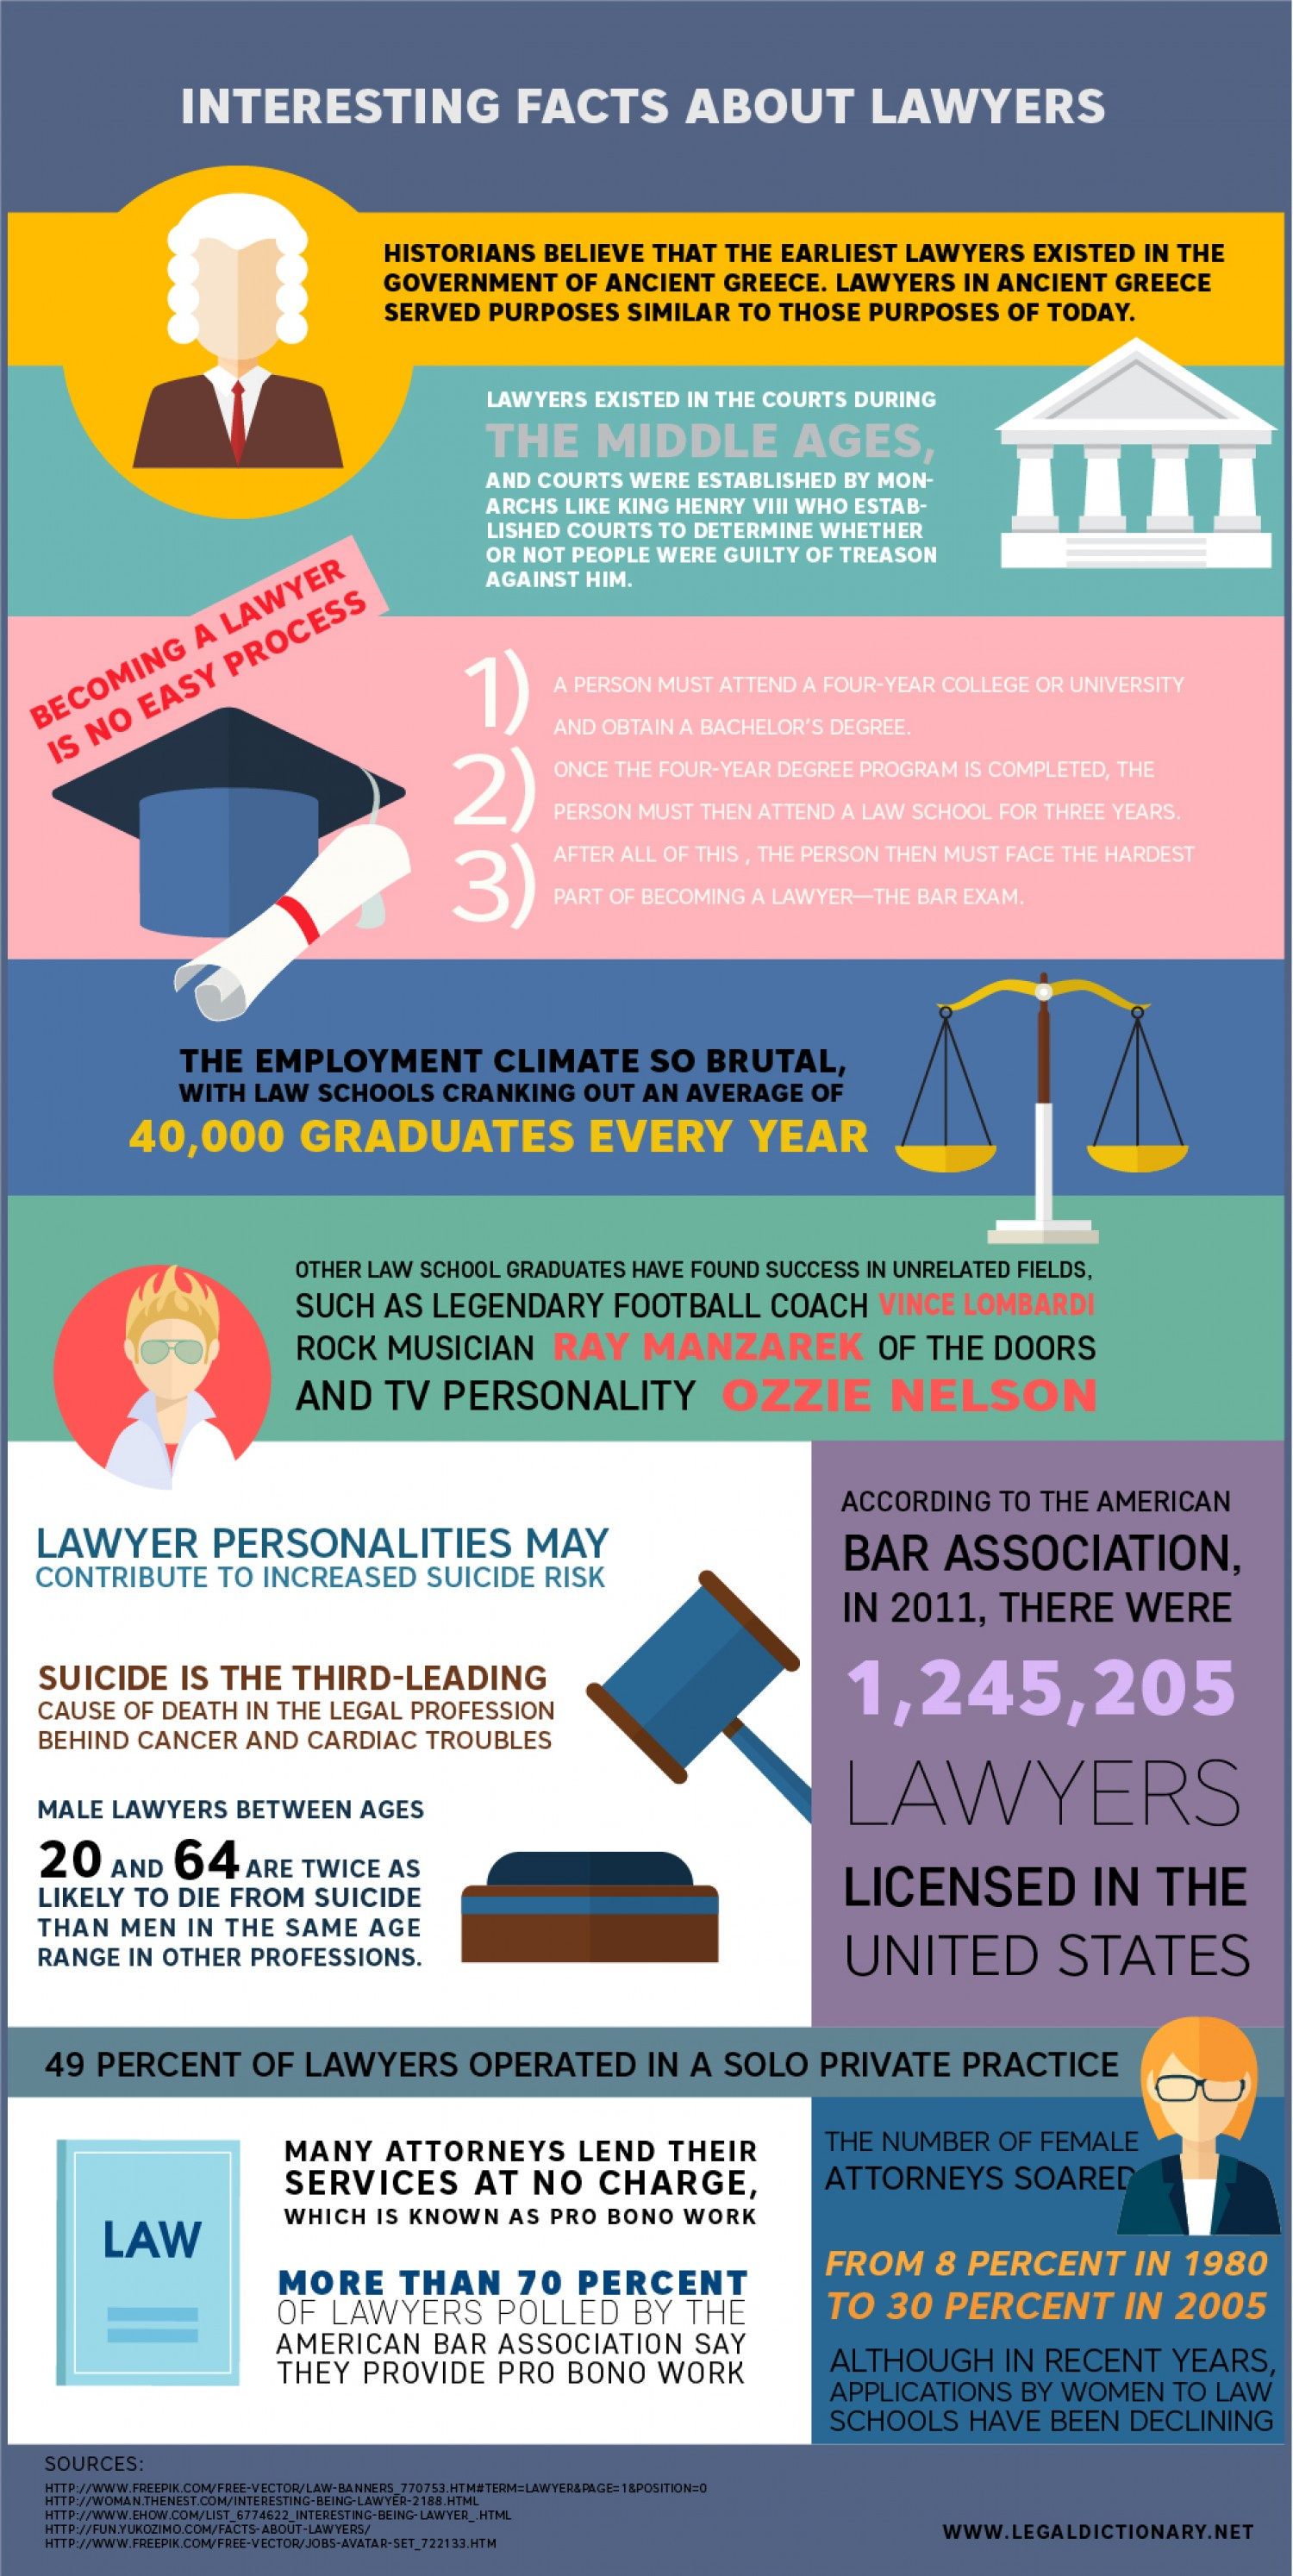 Lawyers Tales: Collection of Facts About Lawyers - Infographic